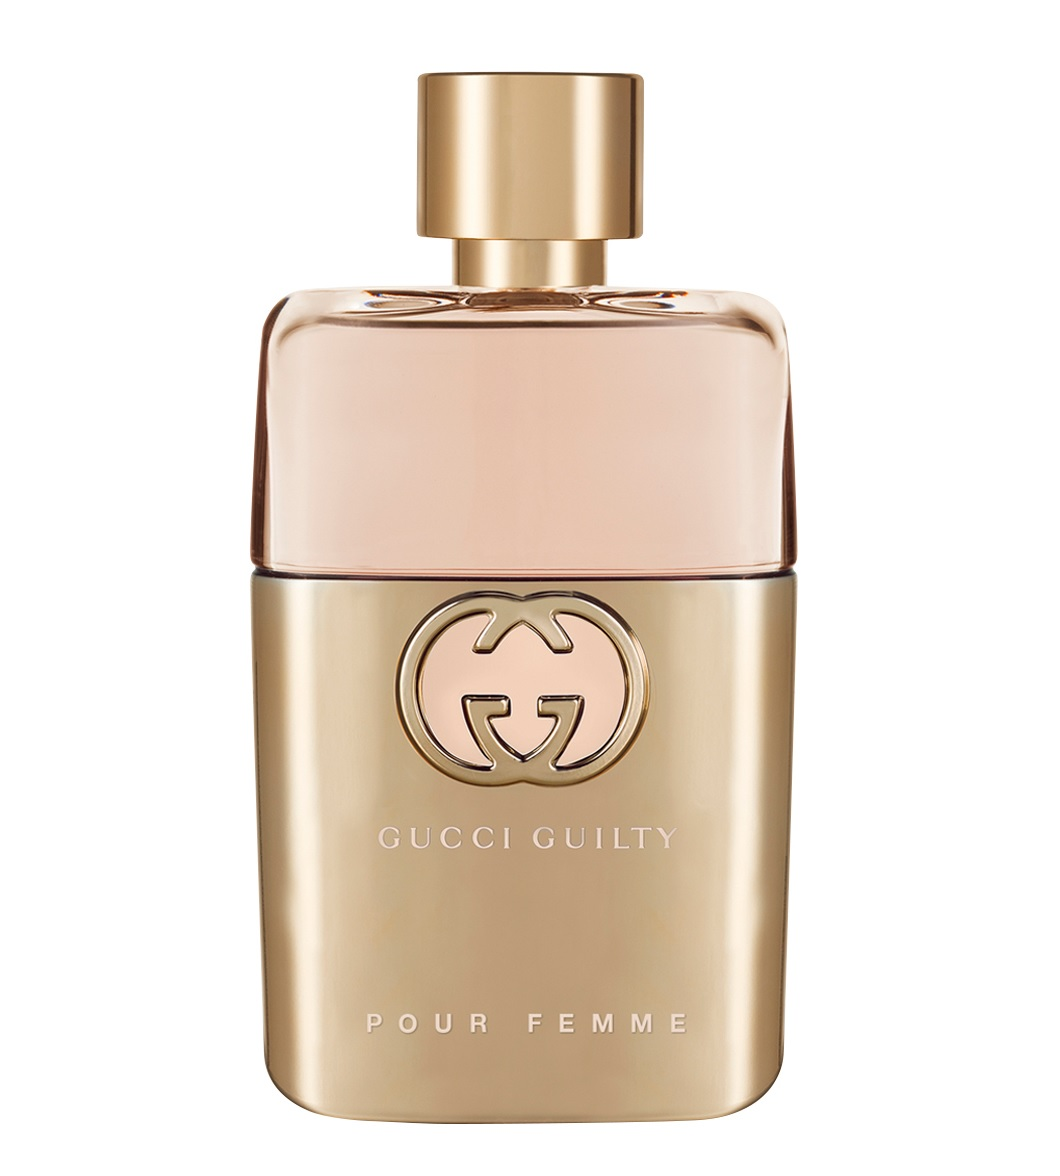 3bbbf0e3881 Gucci Guilty Eau de Parfum Gucci perfume - a new fragrance for women ...